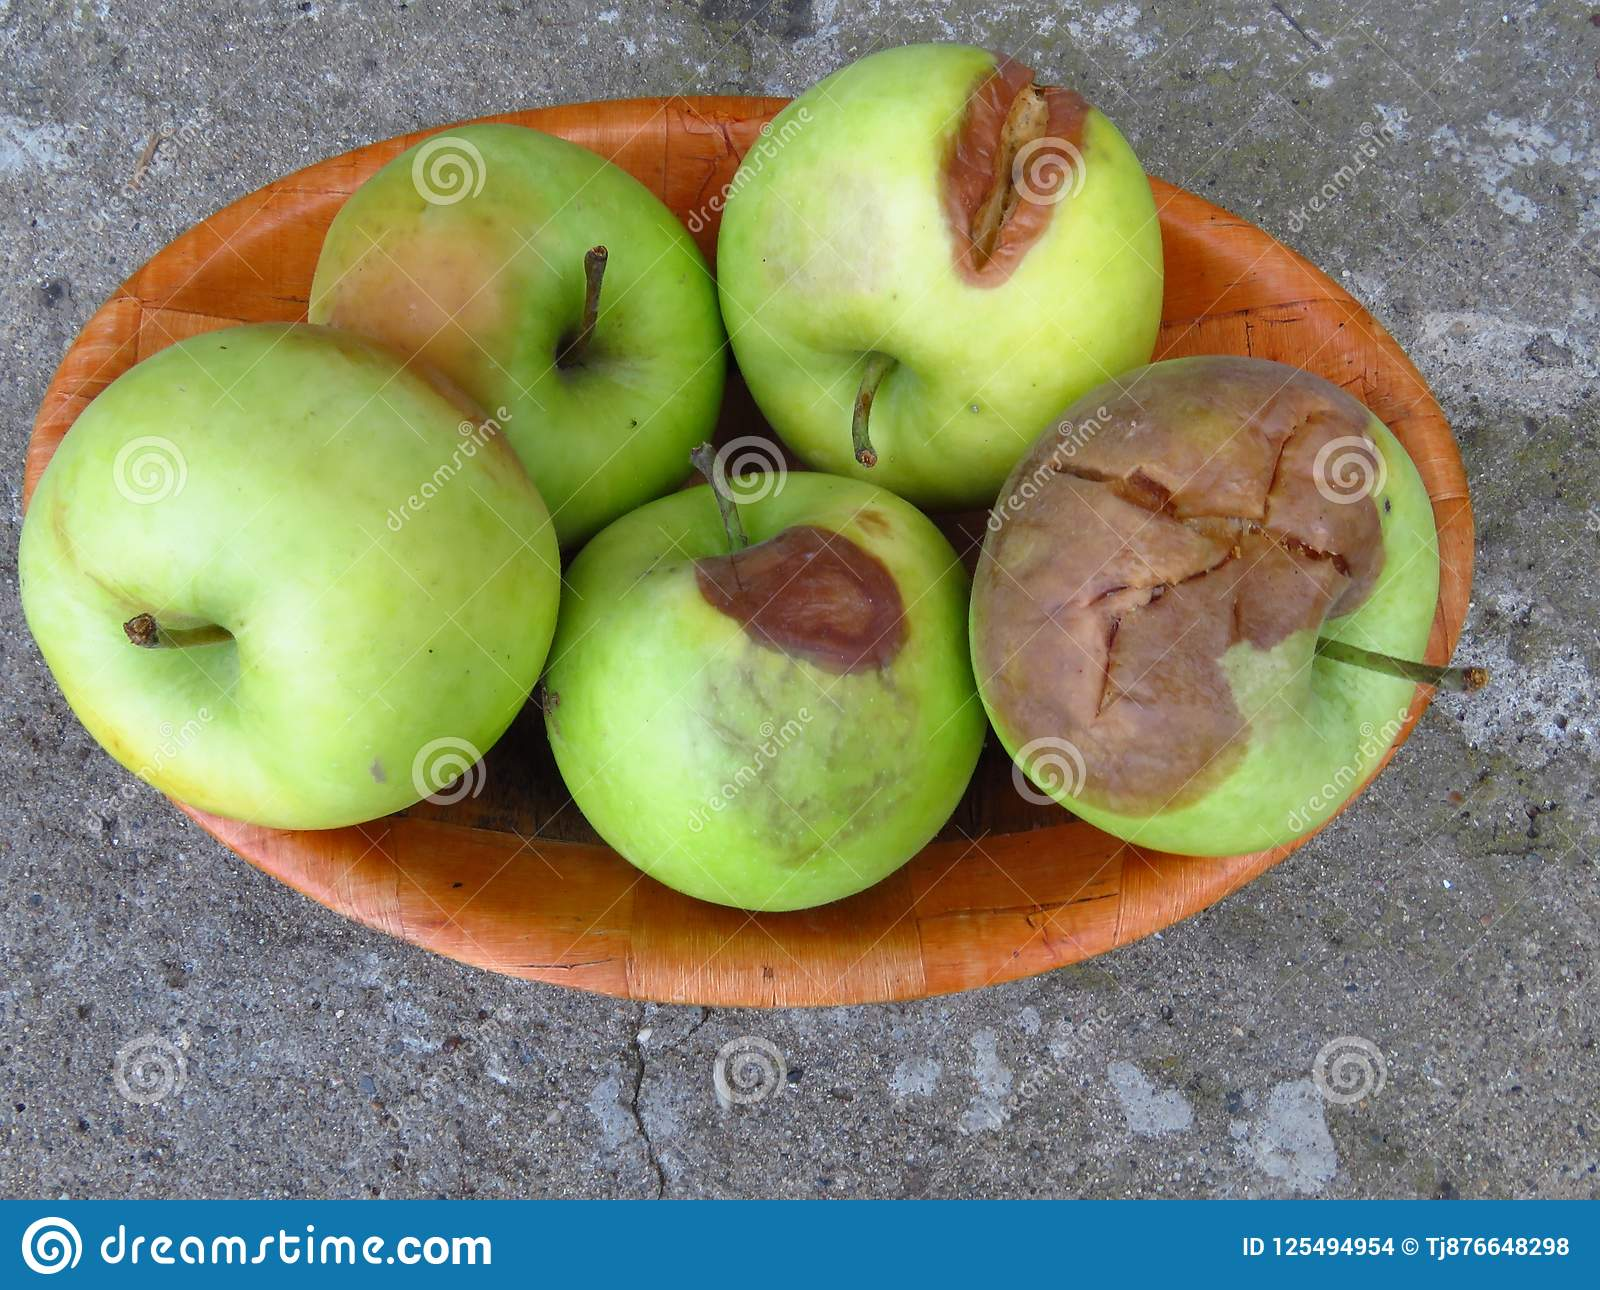 Apple Fruit Diseases